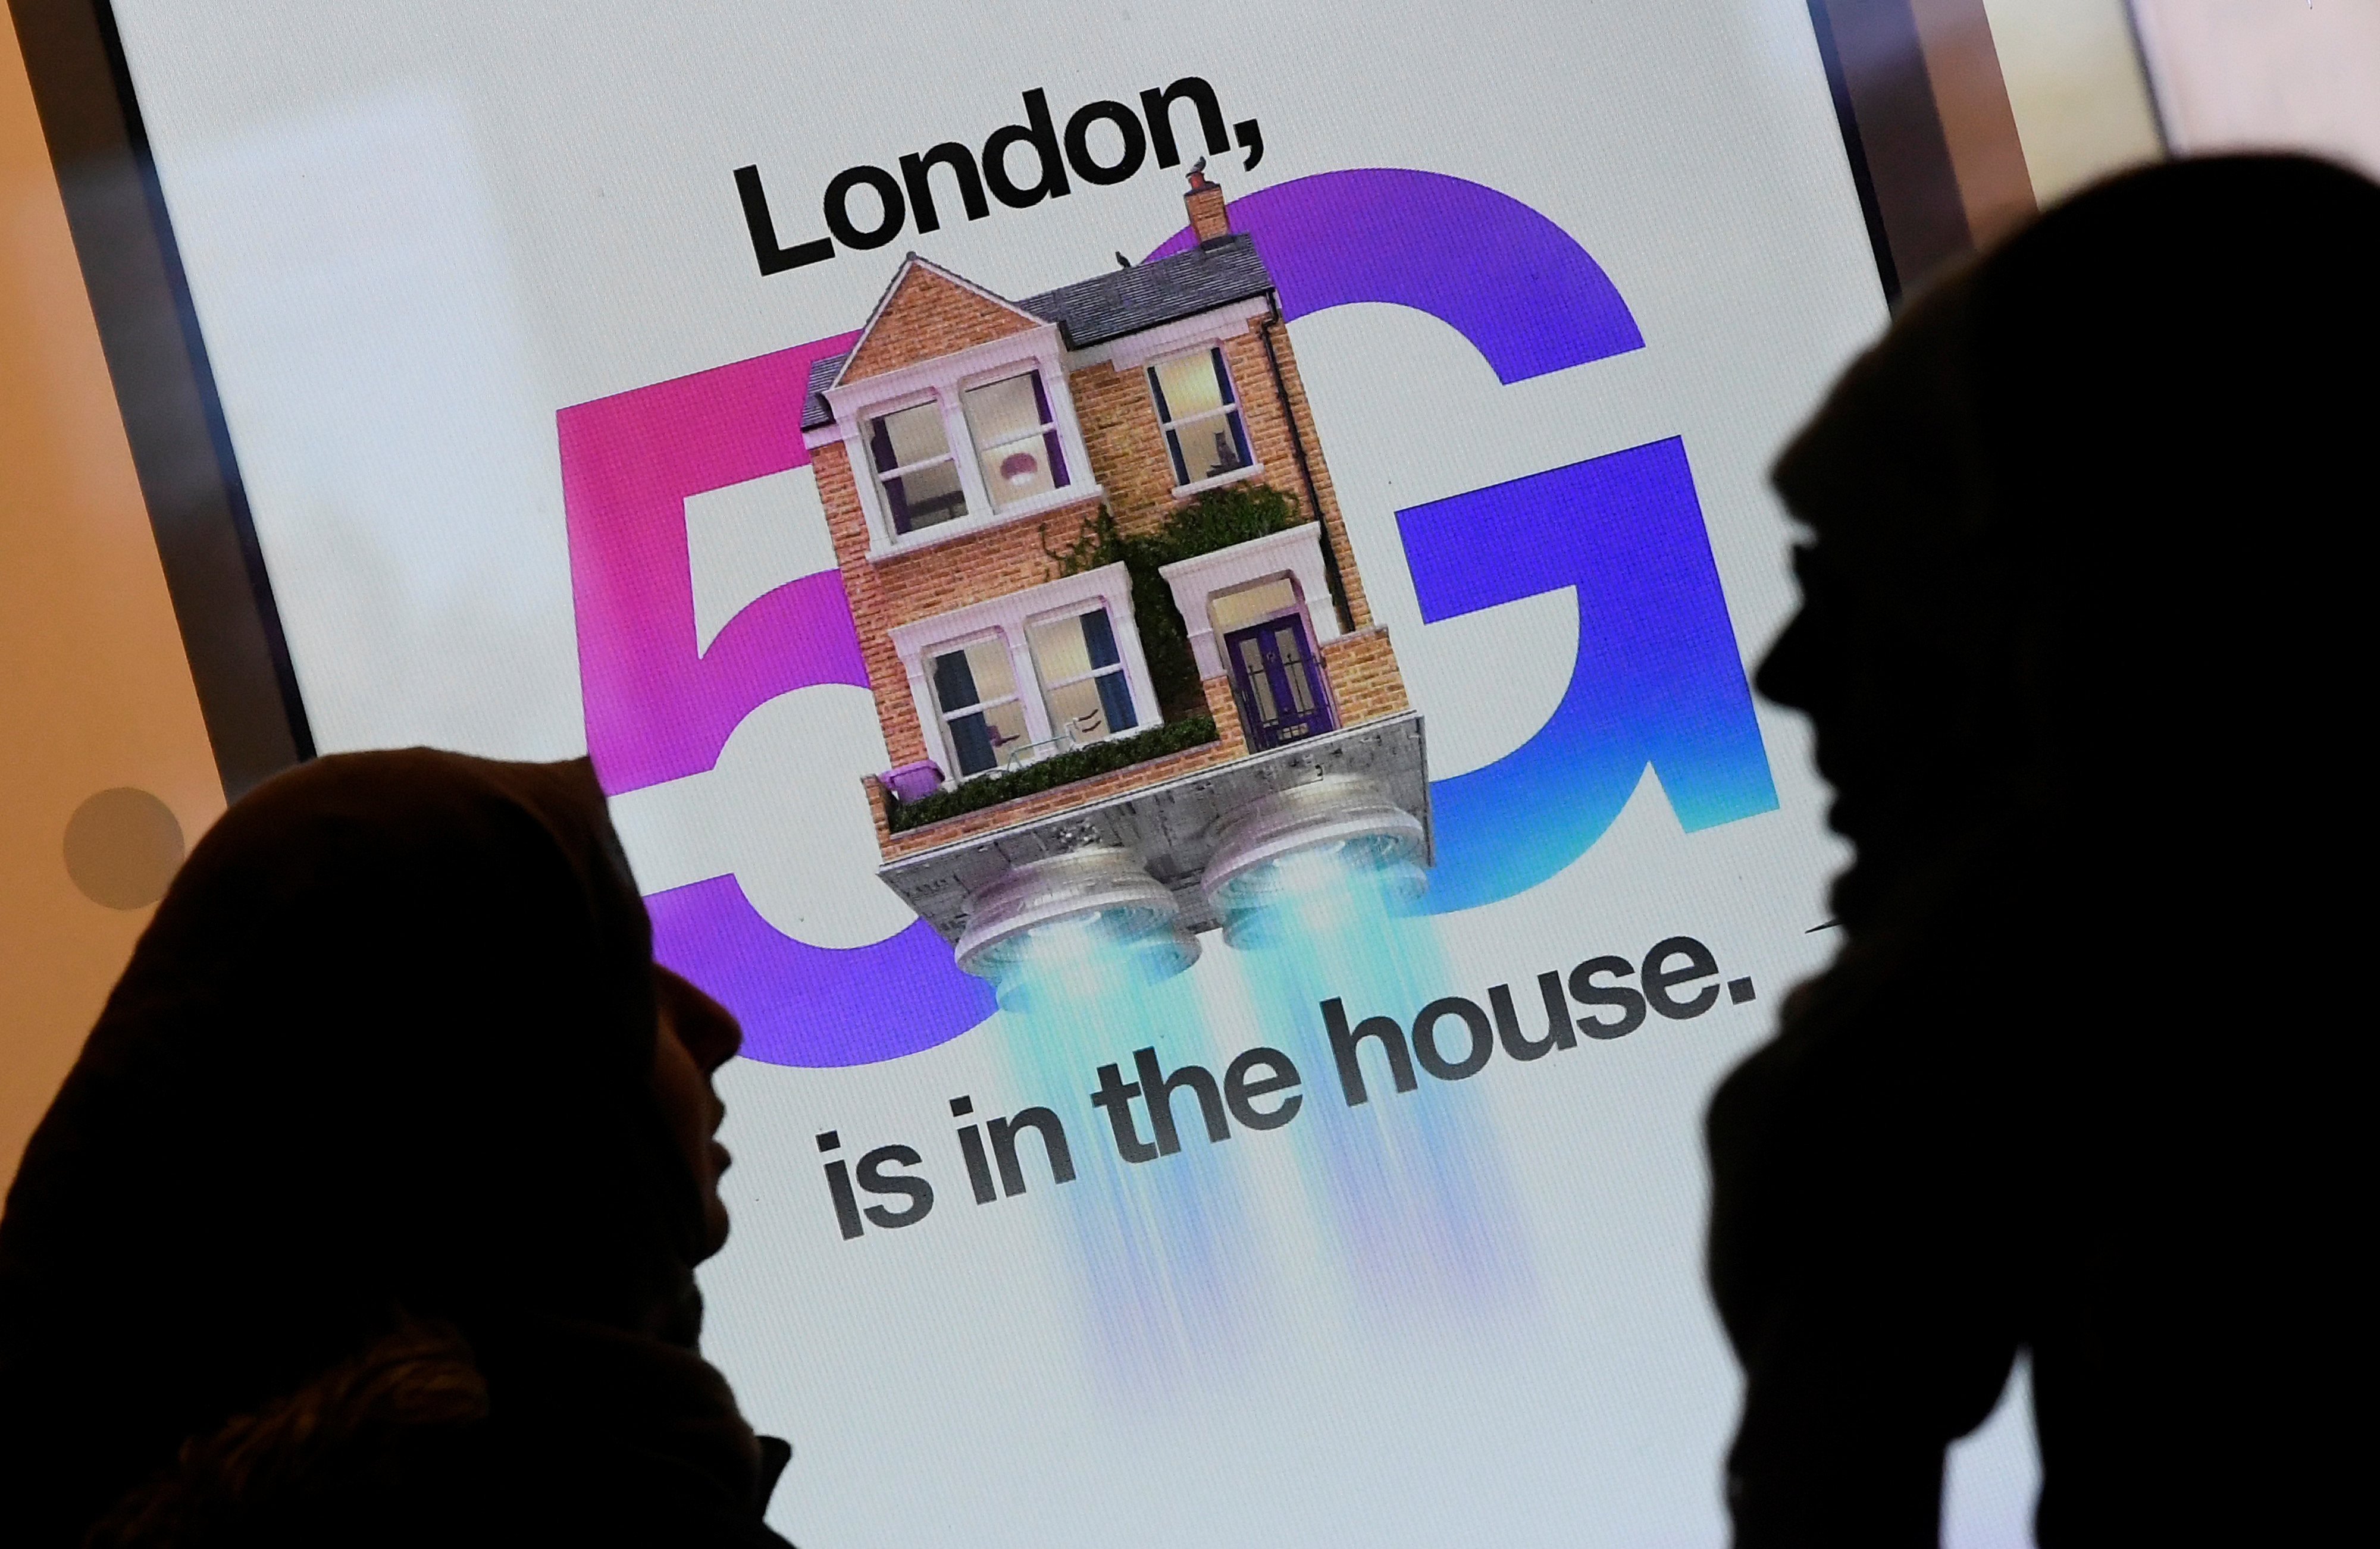 Pedestrians walk past an advertisement promoting the 5G data network at a mobile phone store in London, Britain, January 28, 2020. REUTERS/Toby Melville - RC26PE9MIDQS